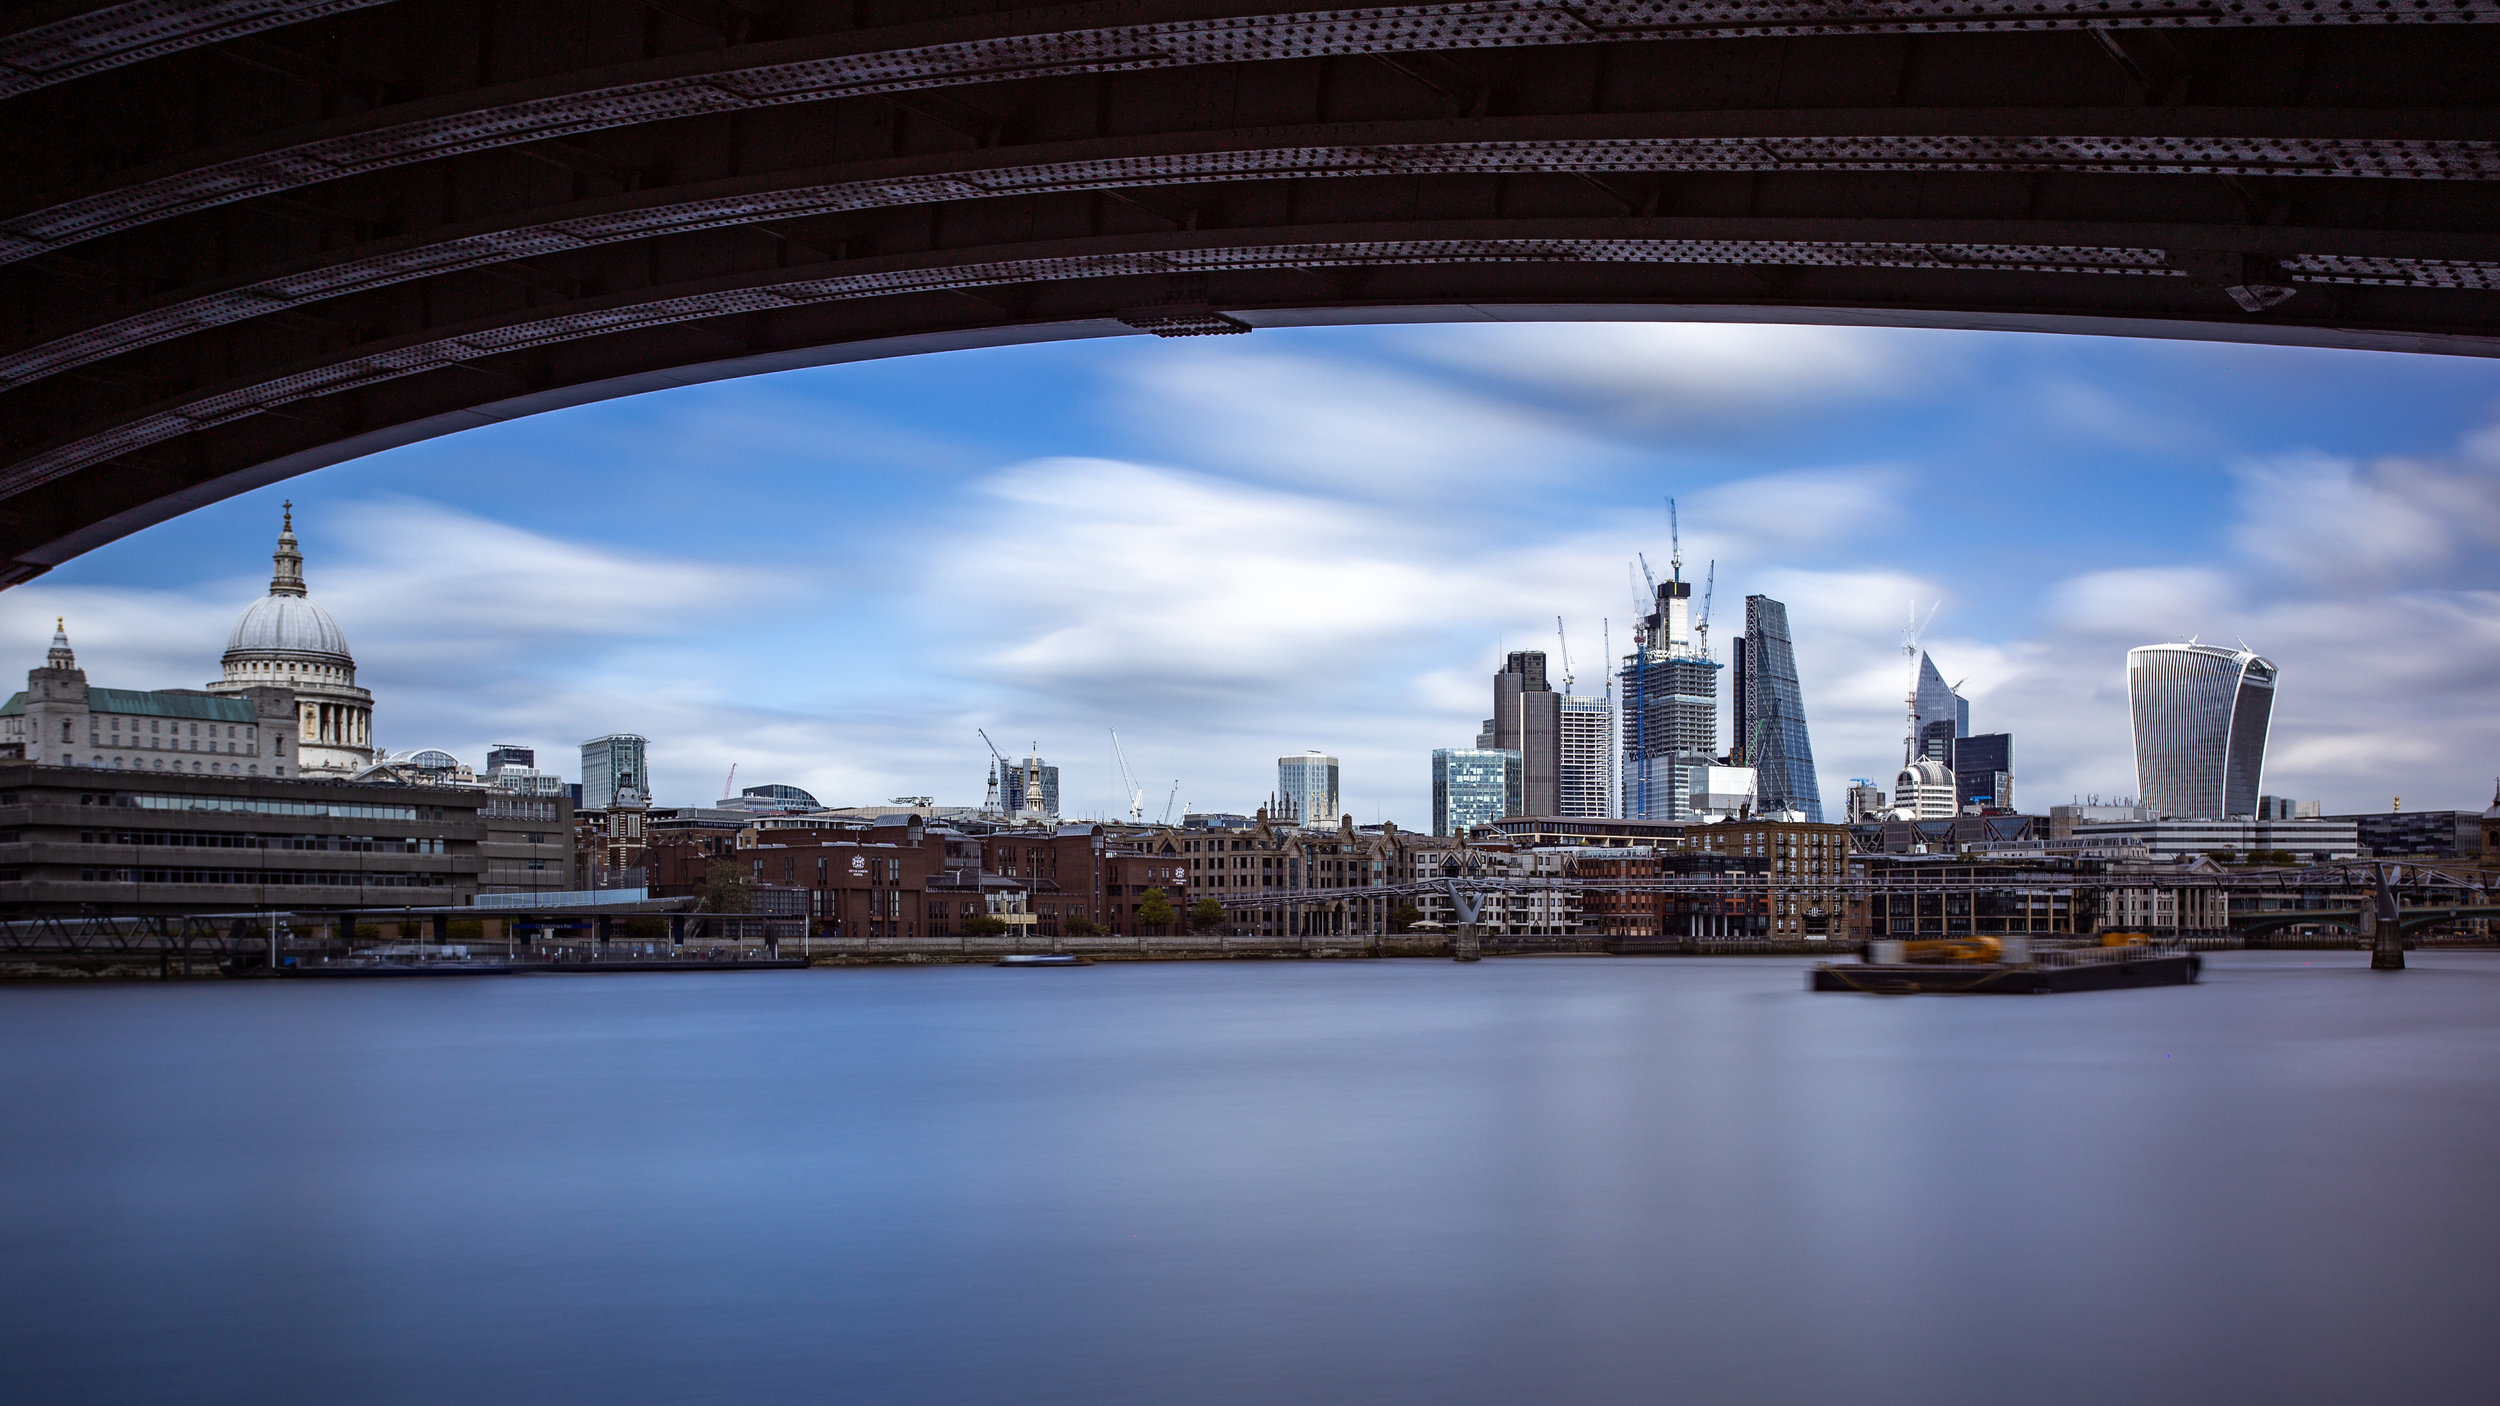 City from Blackfriars